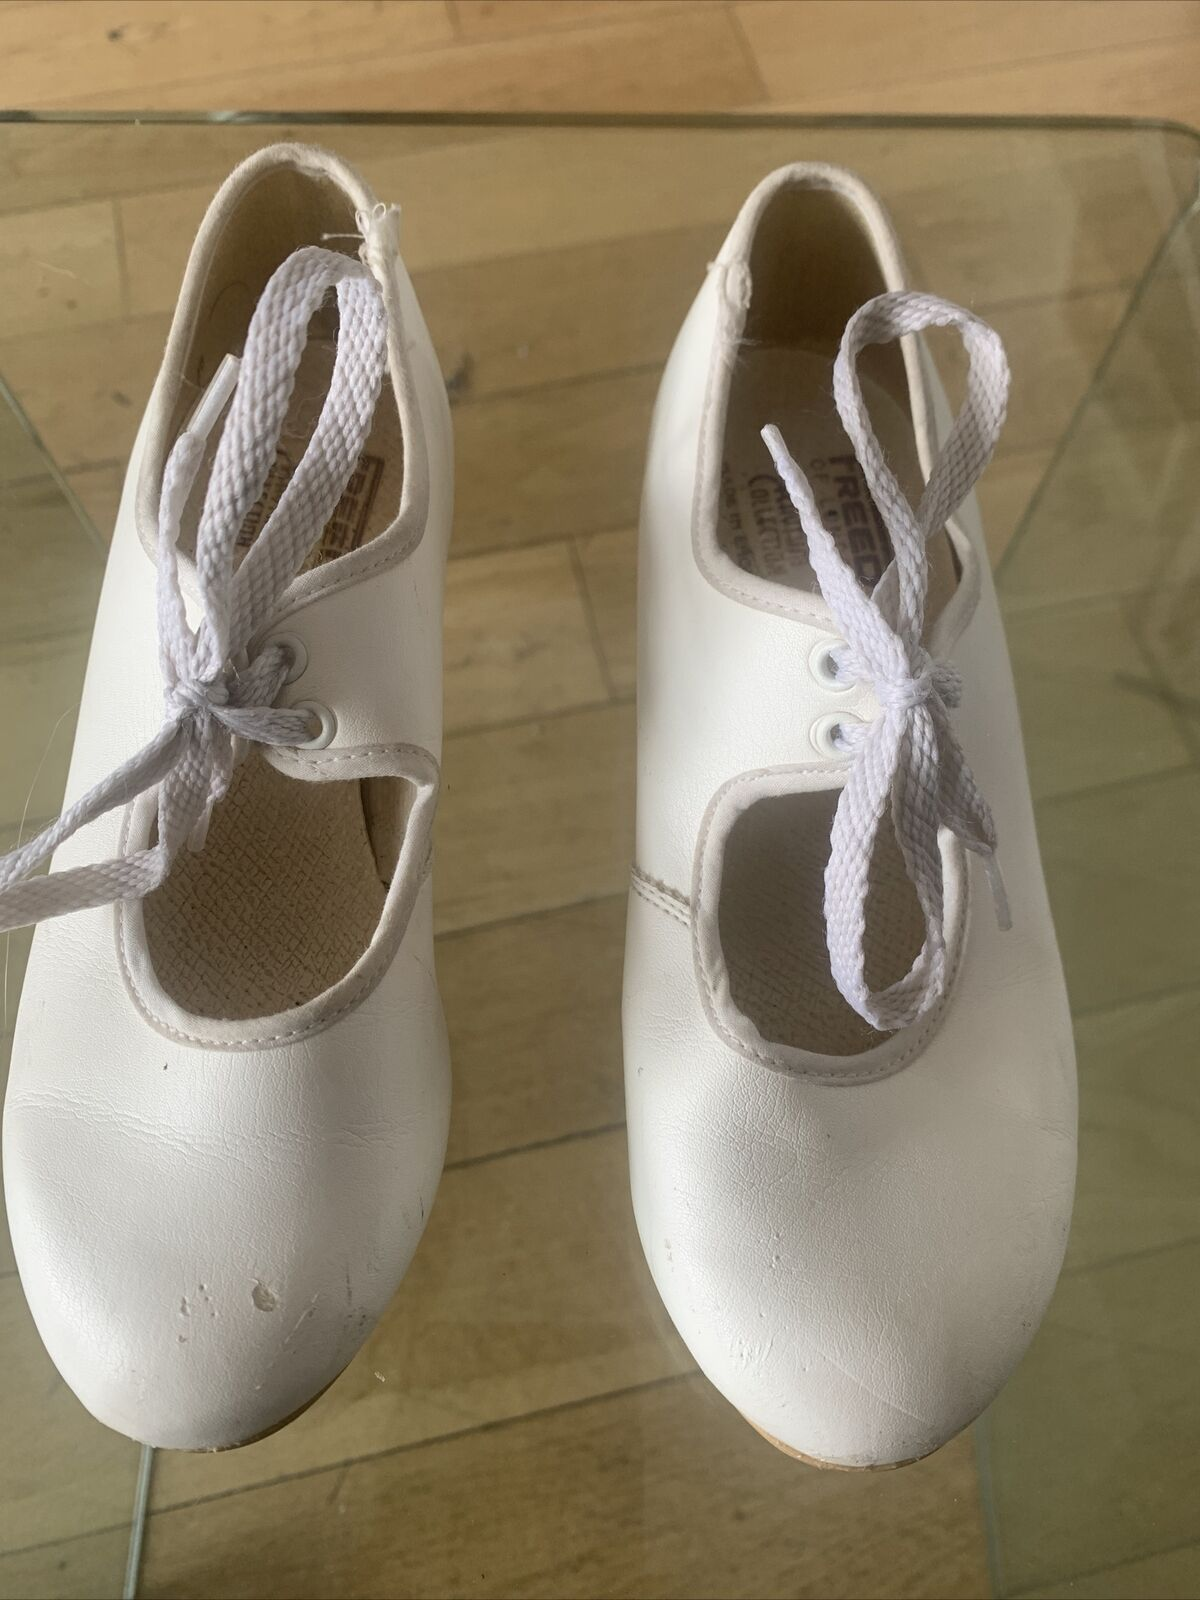 Freed of London Children's White Tap Shoes Size 13 Low Heel